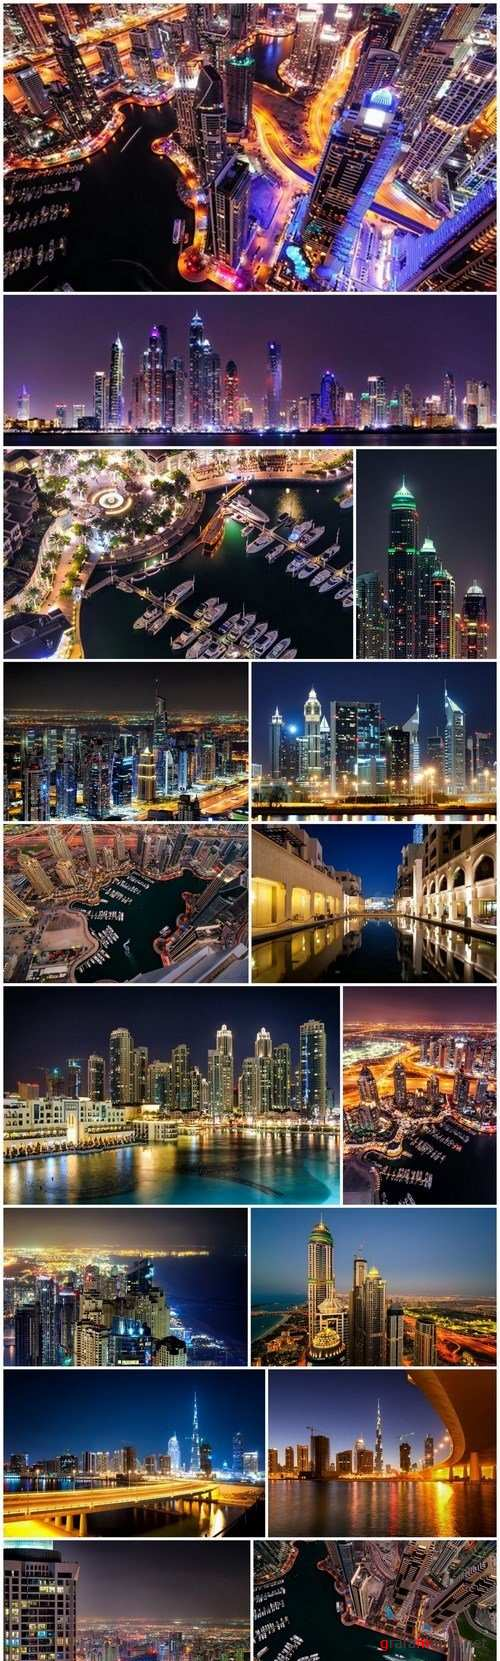 Amazing tallest skyscrapers in Sheikh Zayed, Dubai - 16xUHQ JPEG Photo Stock